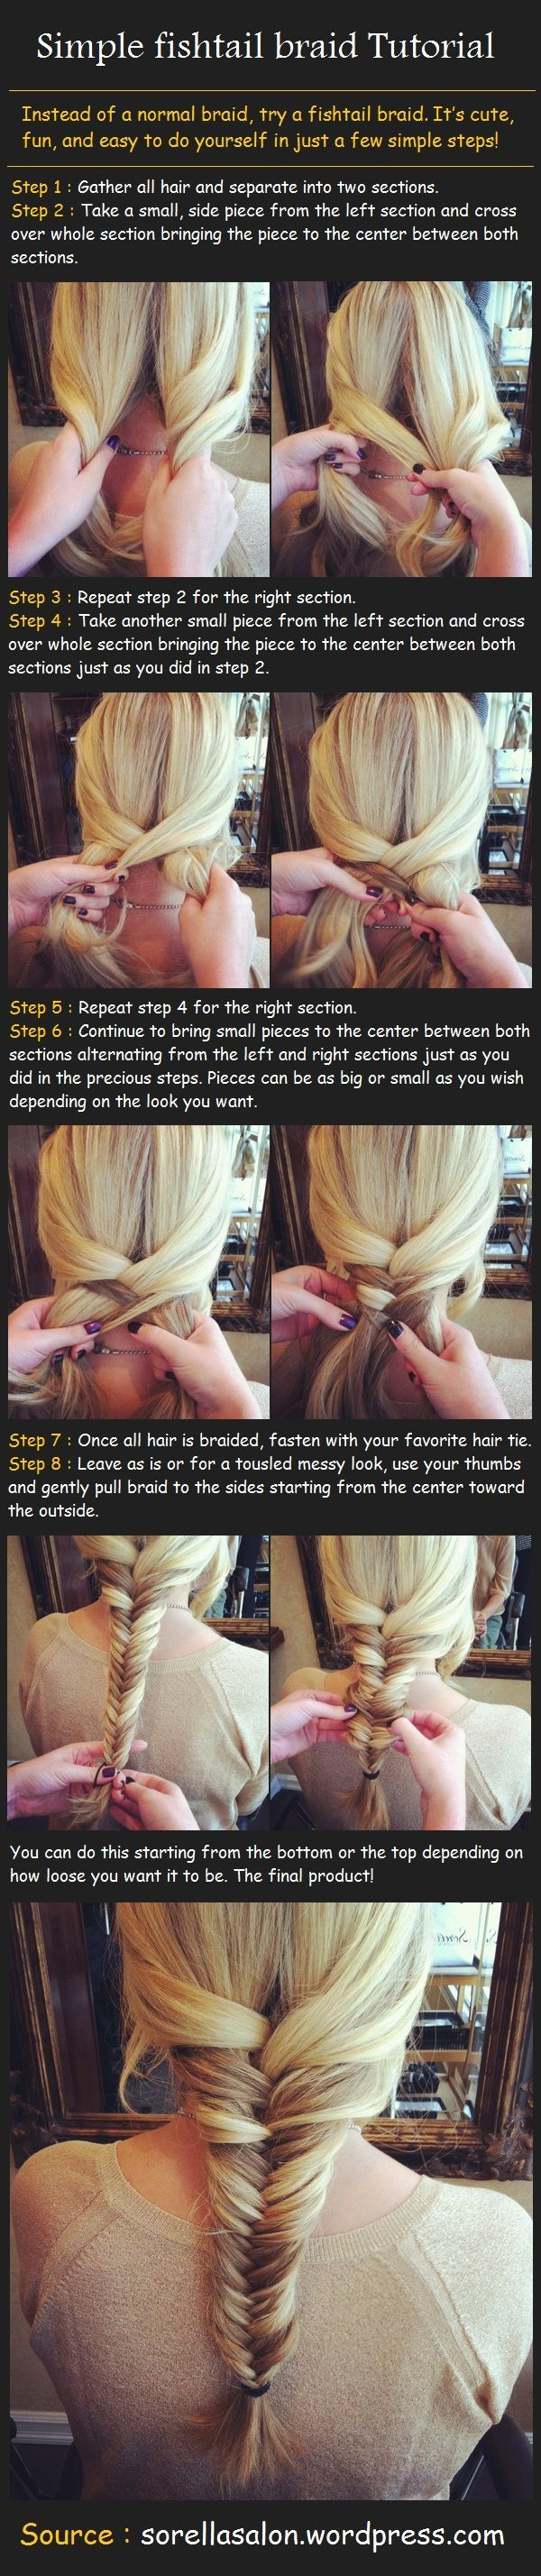 Simple Fishtail Braid Tutorial ~~ How To Style:   Step 1: Gather all hair and separate into two sections. Step 2: Take a small, side piece from the left section and cross over whole section bringing the piece to the center between both sections. Step 3: Repeat step 2 for the right section.